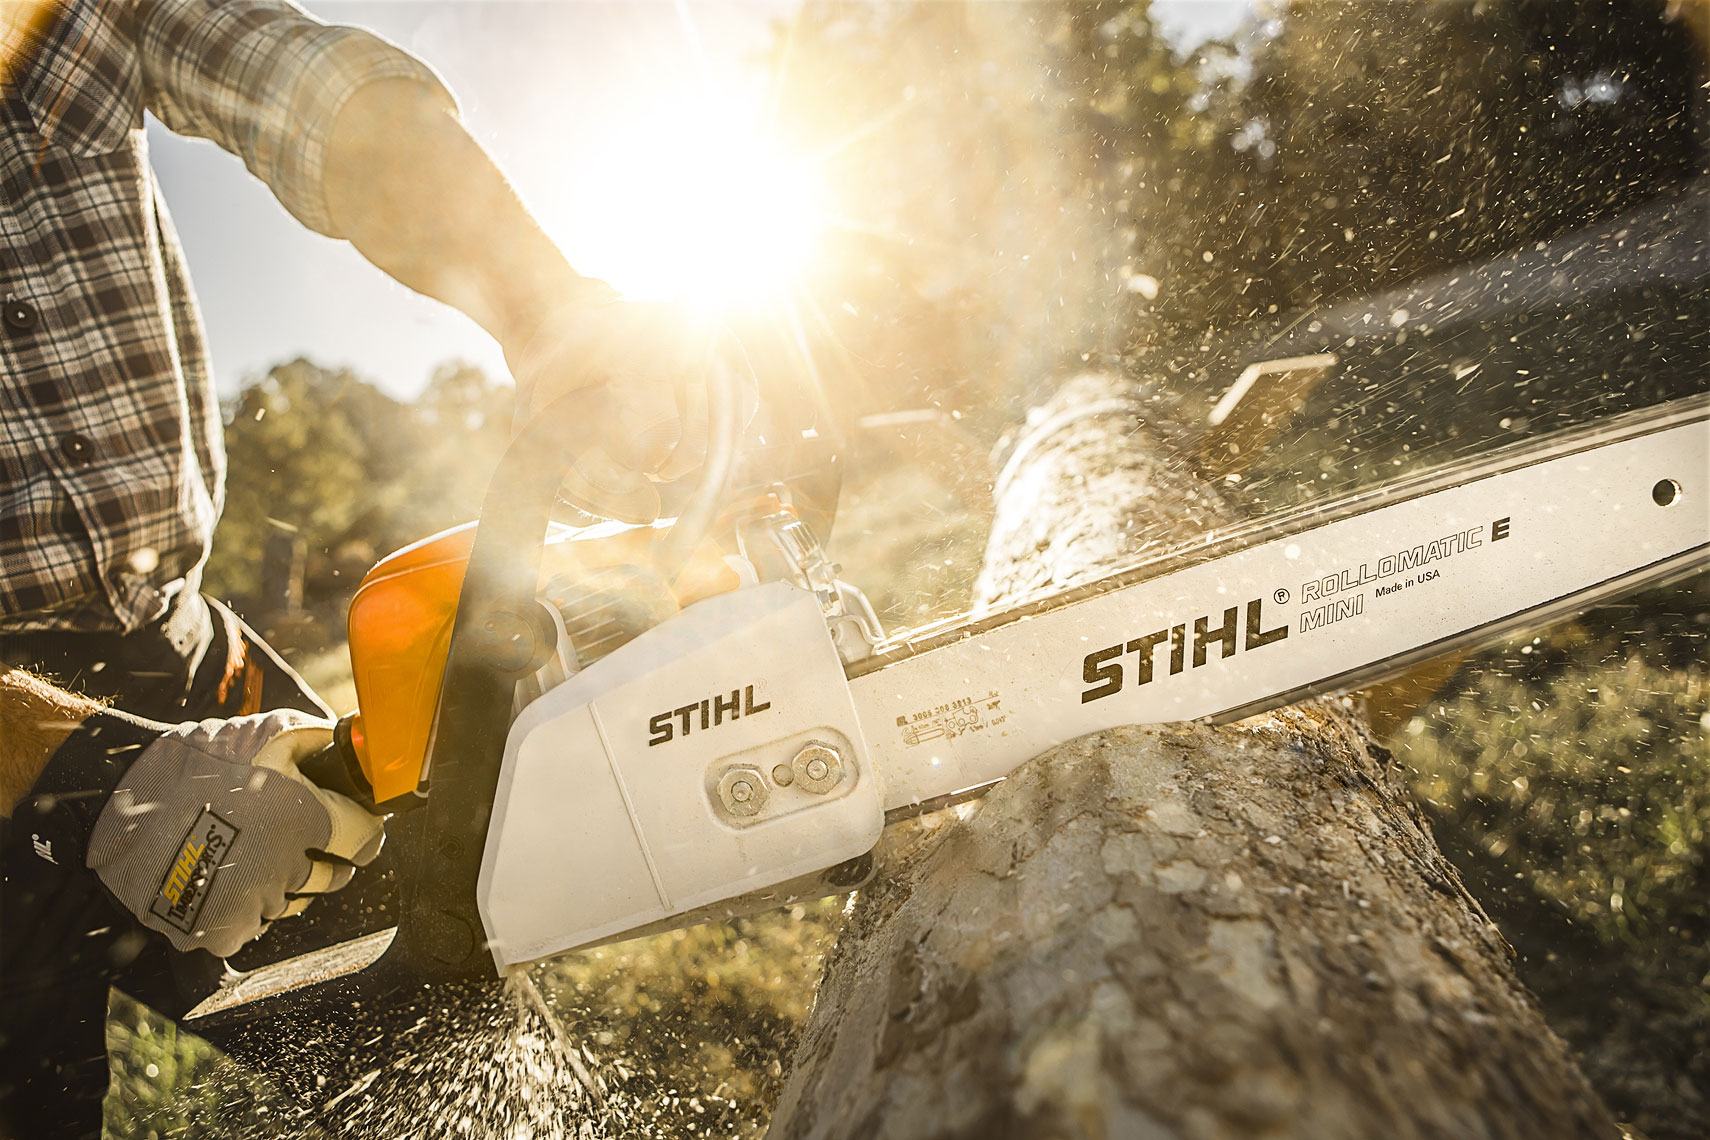 STIHL Chainsaw MS170 | John Fedele Product Photography